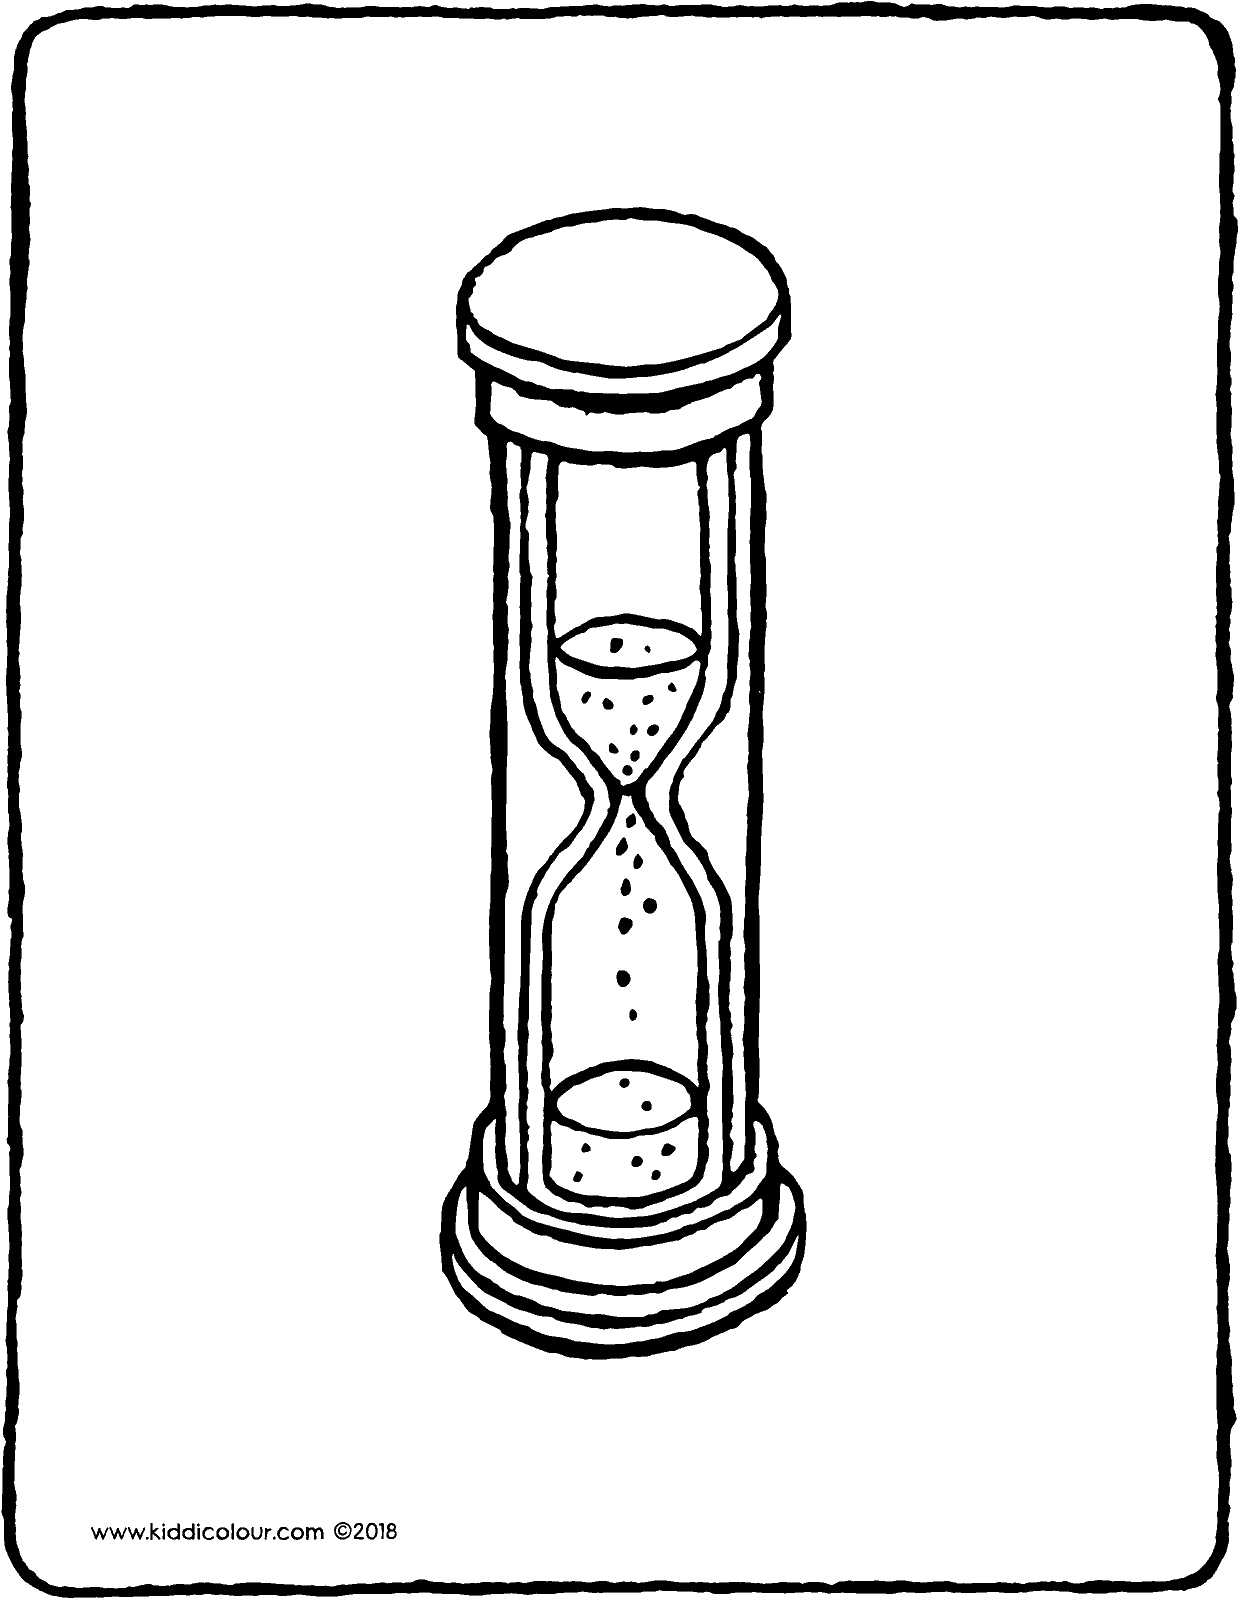 hourglass colouring page drawing picture 01V